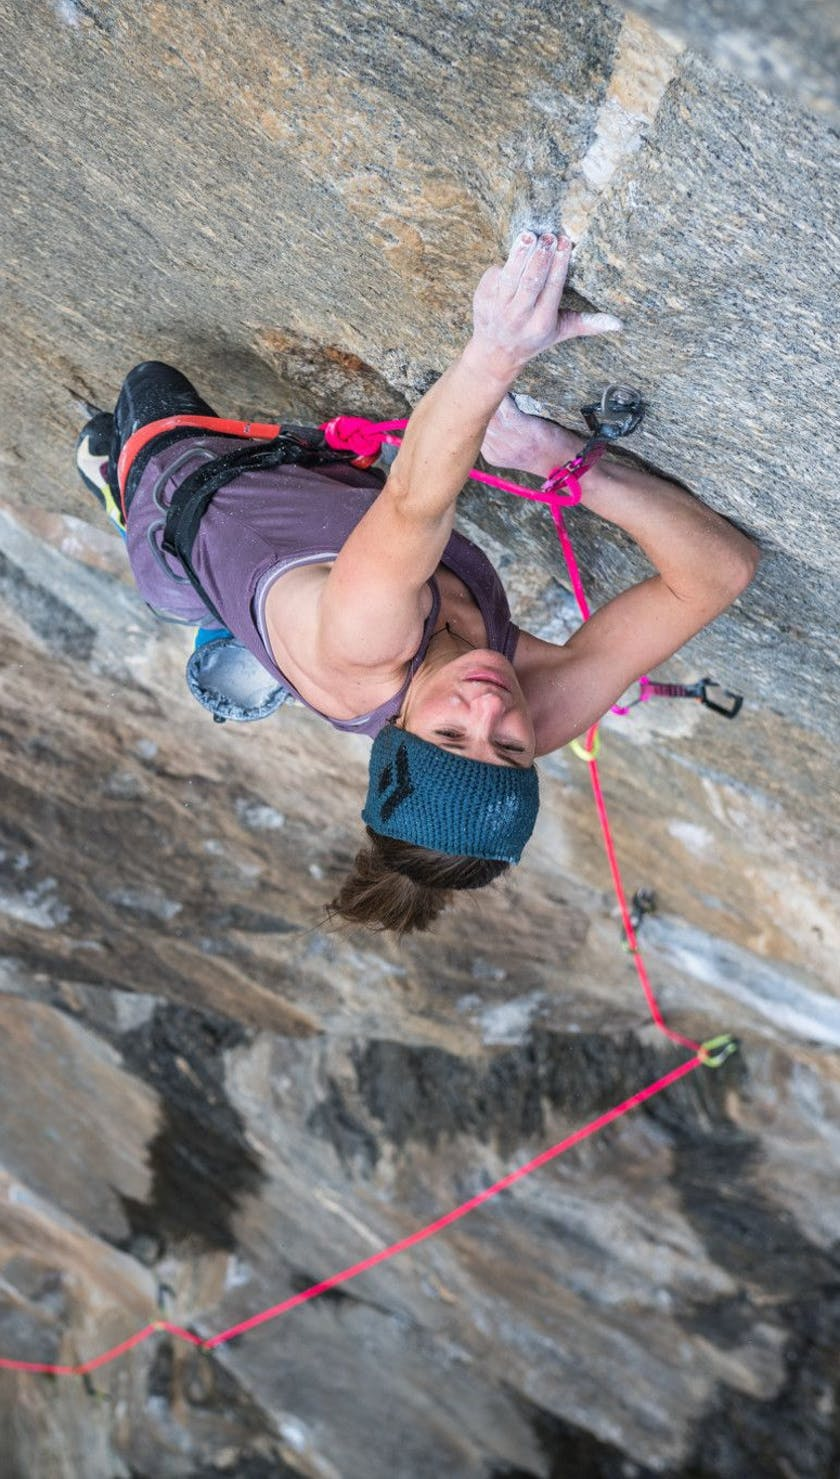 Climbing woman sport lead climbing with 8.9 Rope